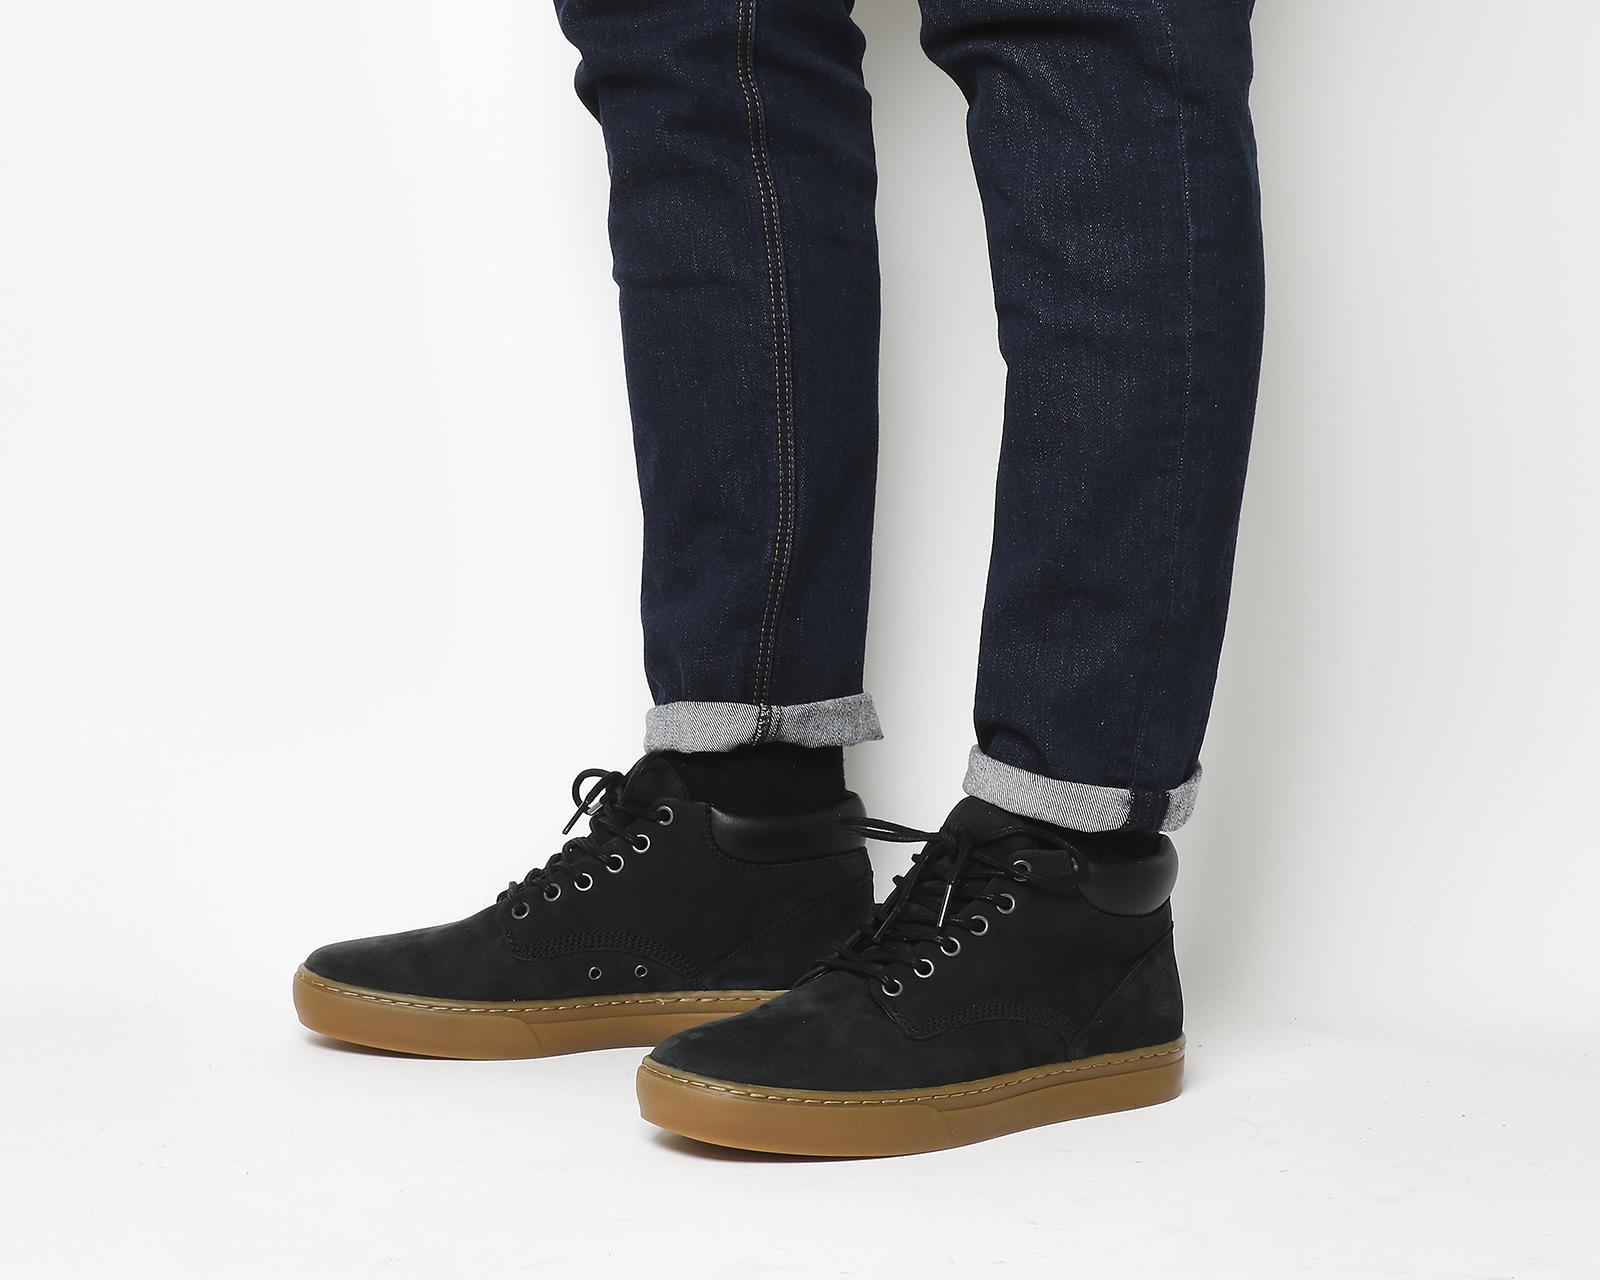 Timberland Adventure 2.0 Cupsole Chukka Boots in Black for Men - Lyst 3877649d92d1